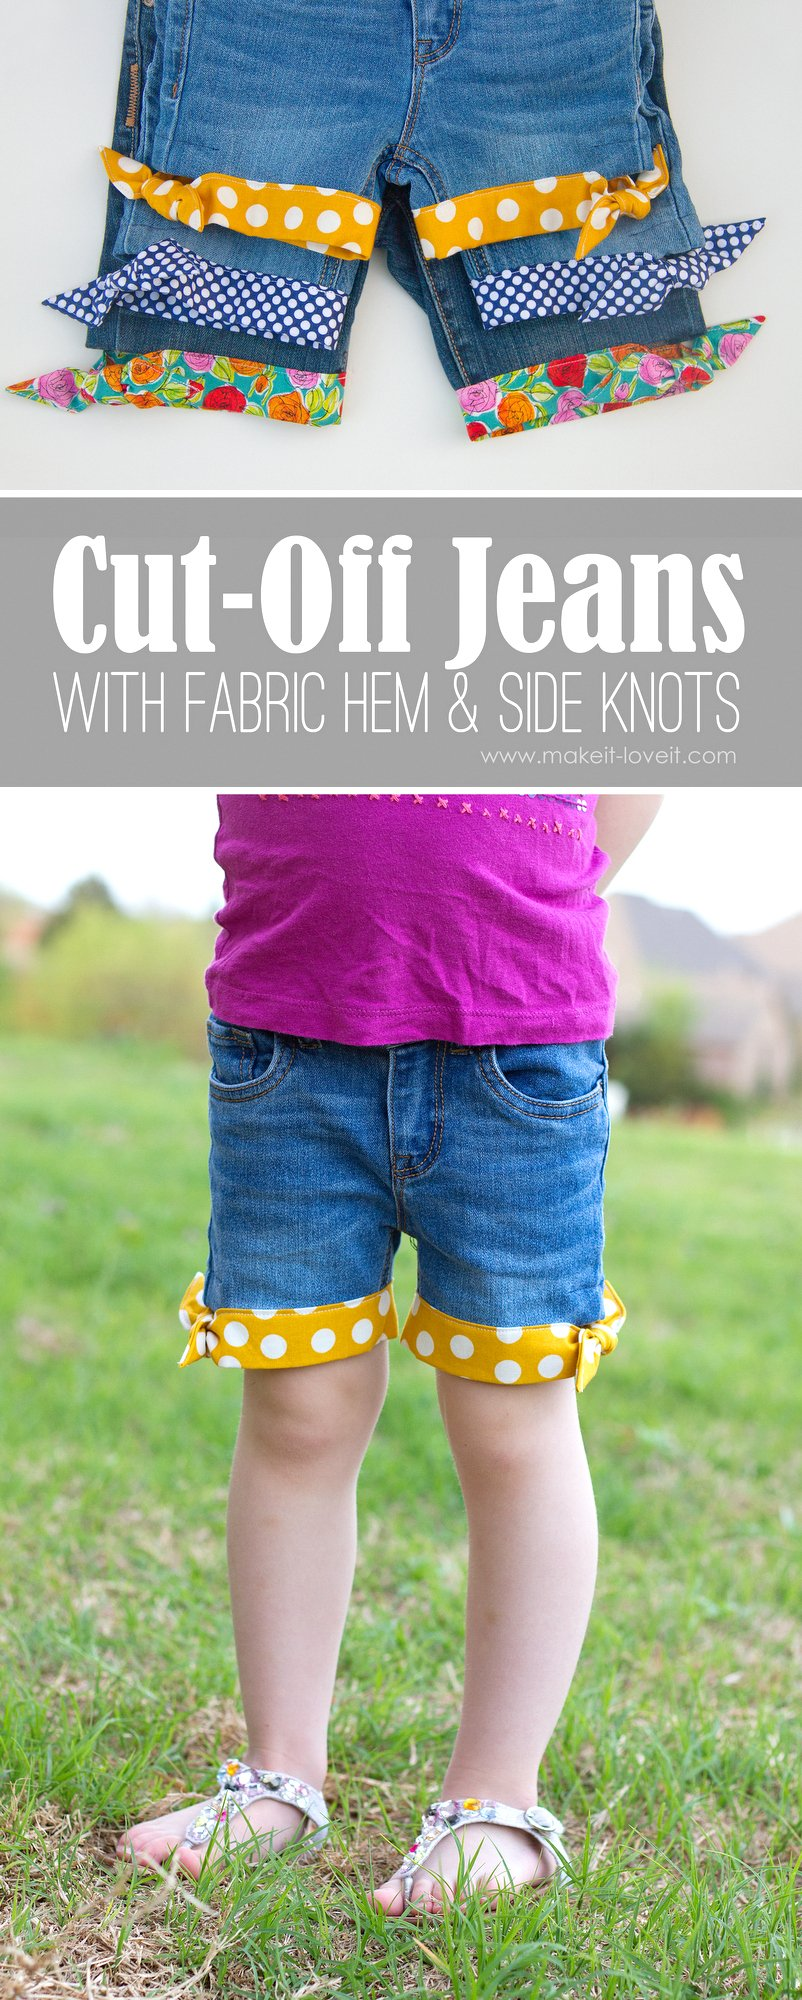 Cut-off jeans…with fabric hem and side knots